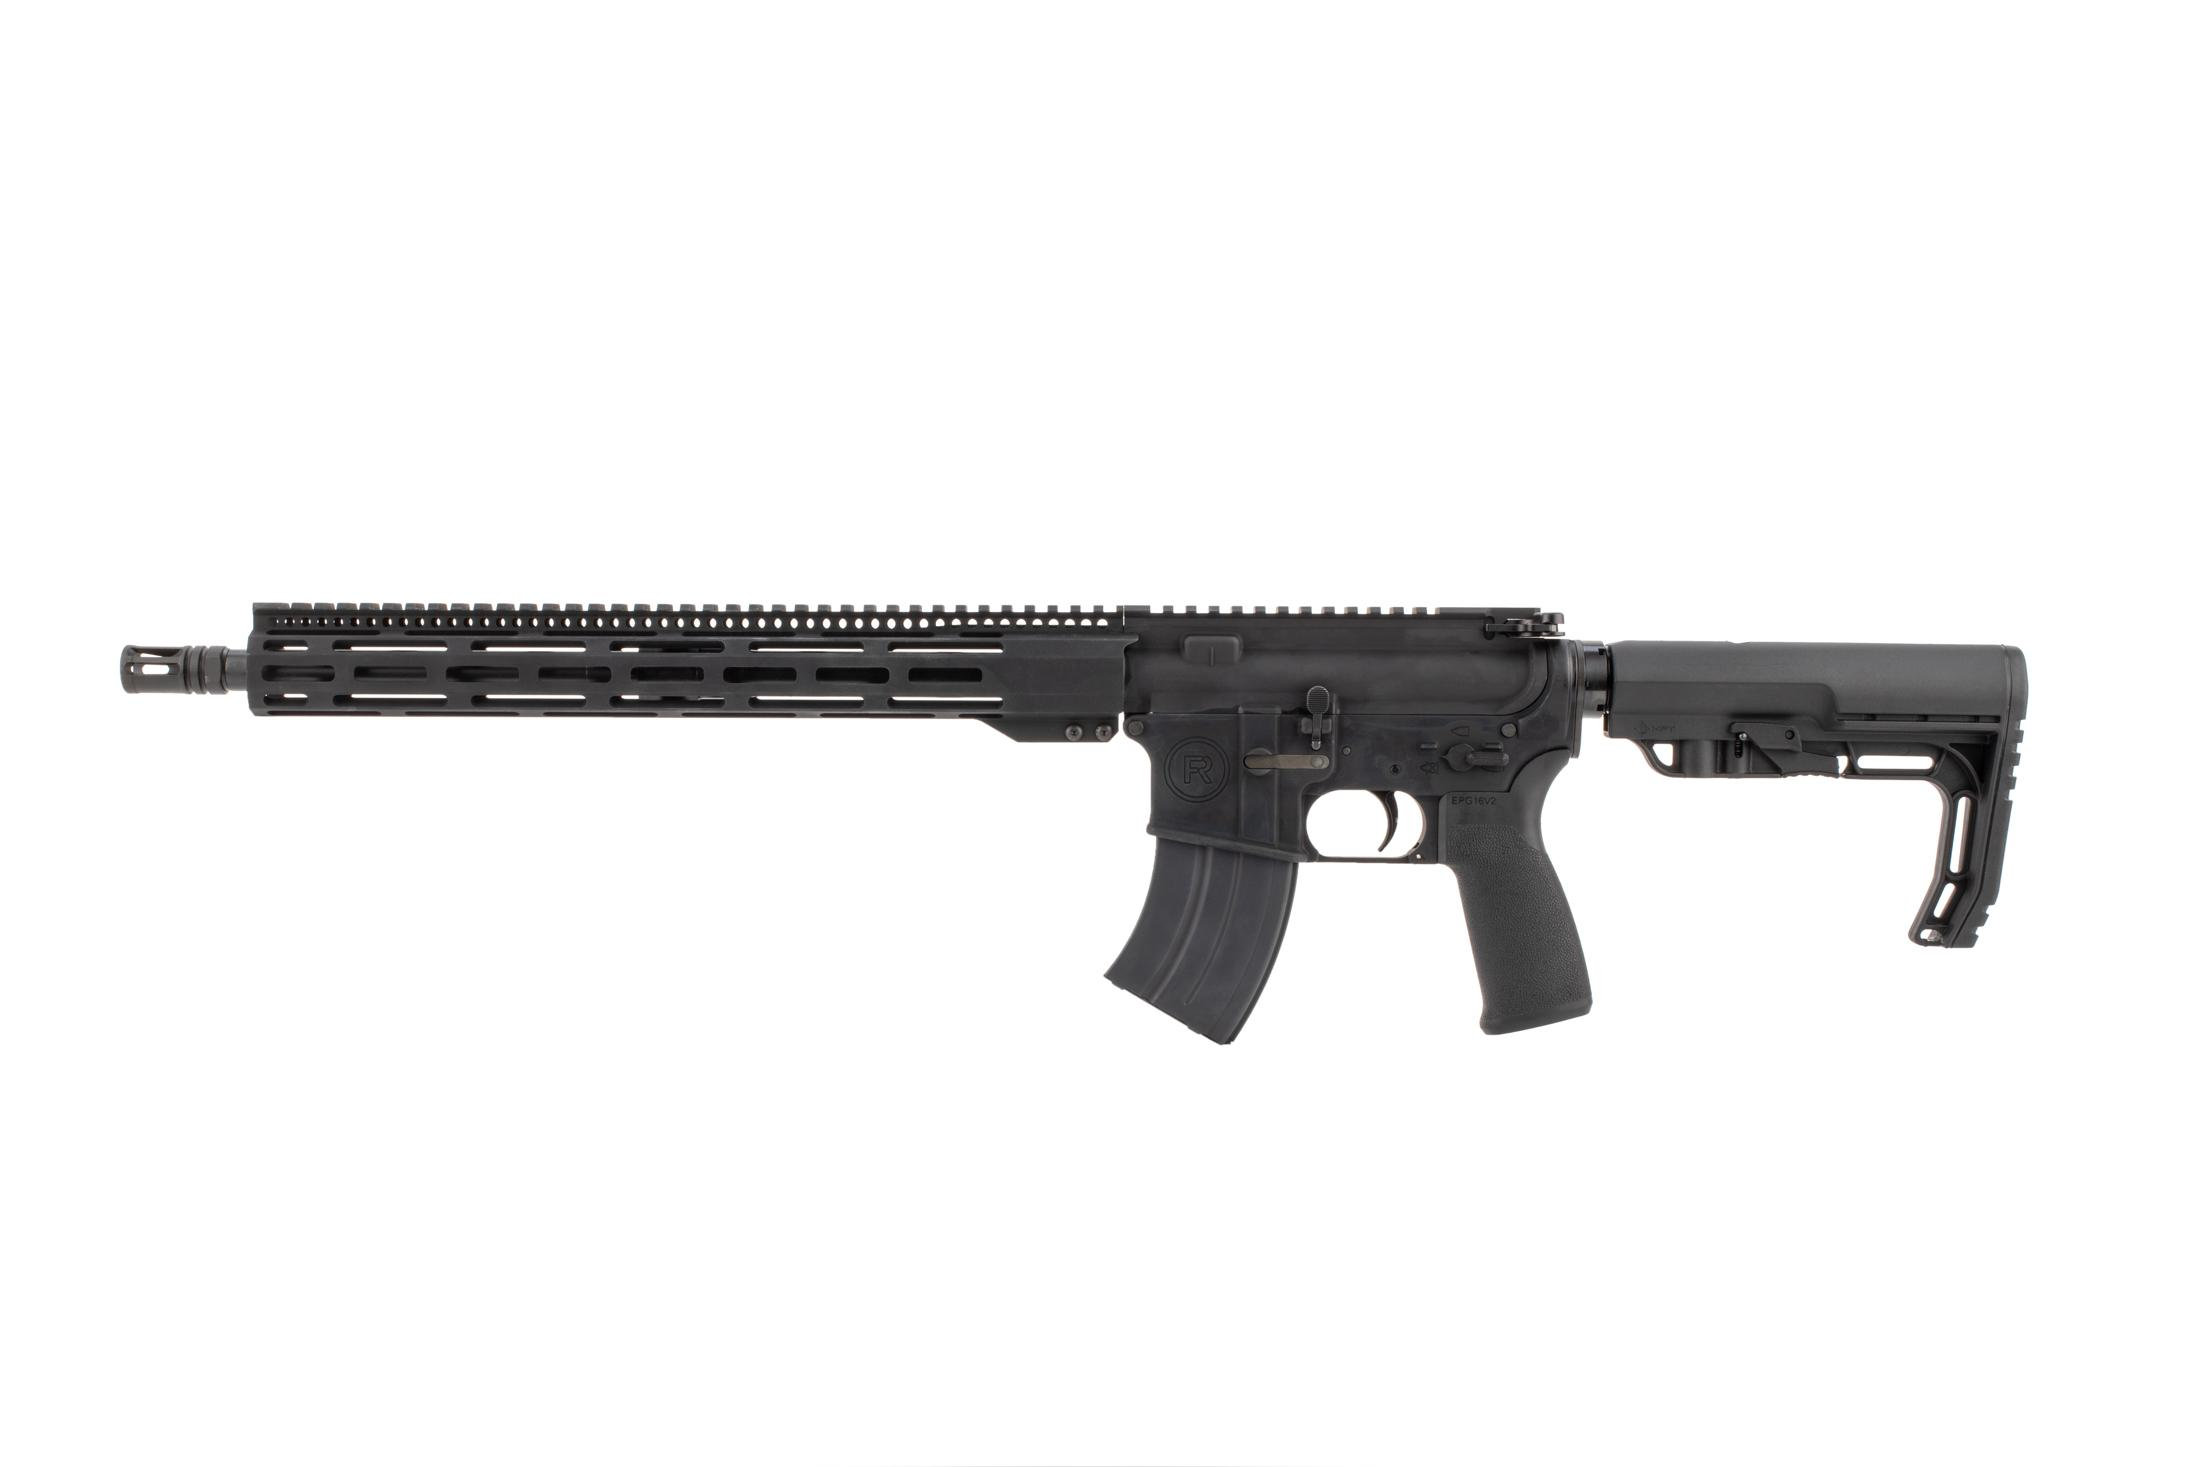 Radical Firearms 7.62x39mm AR with 16in barrel is threaded 5/8x24 and topped with an effective A2 flash hider